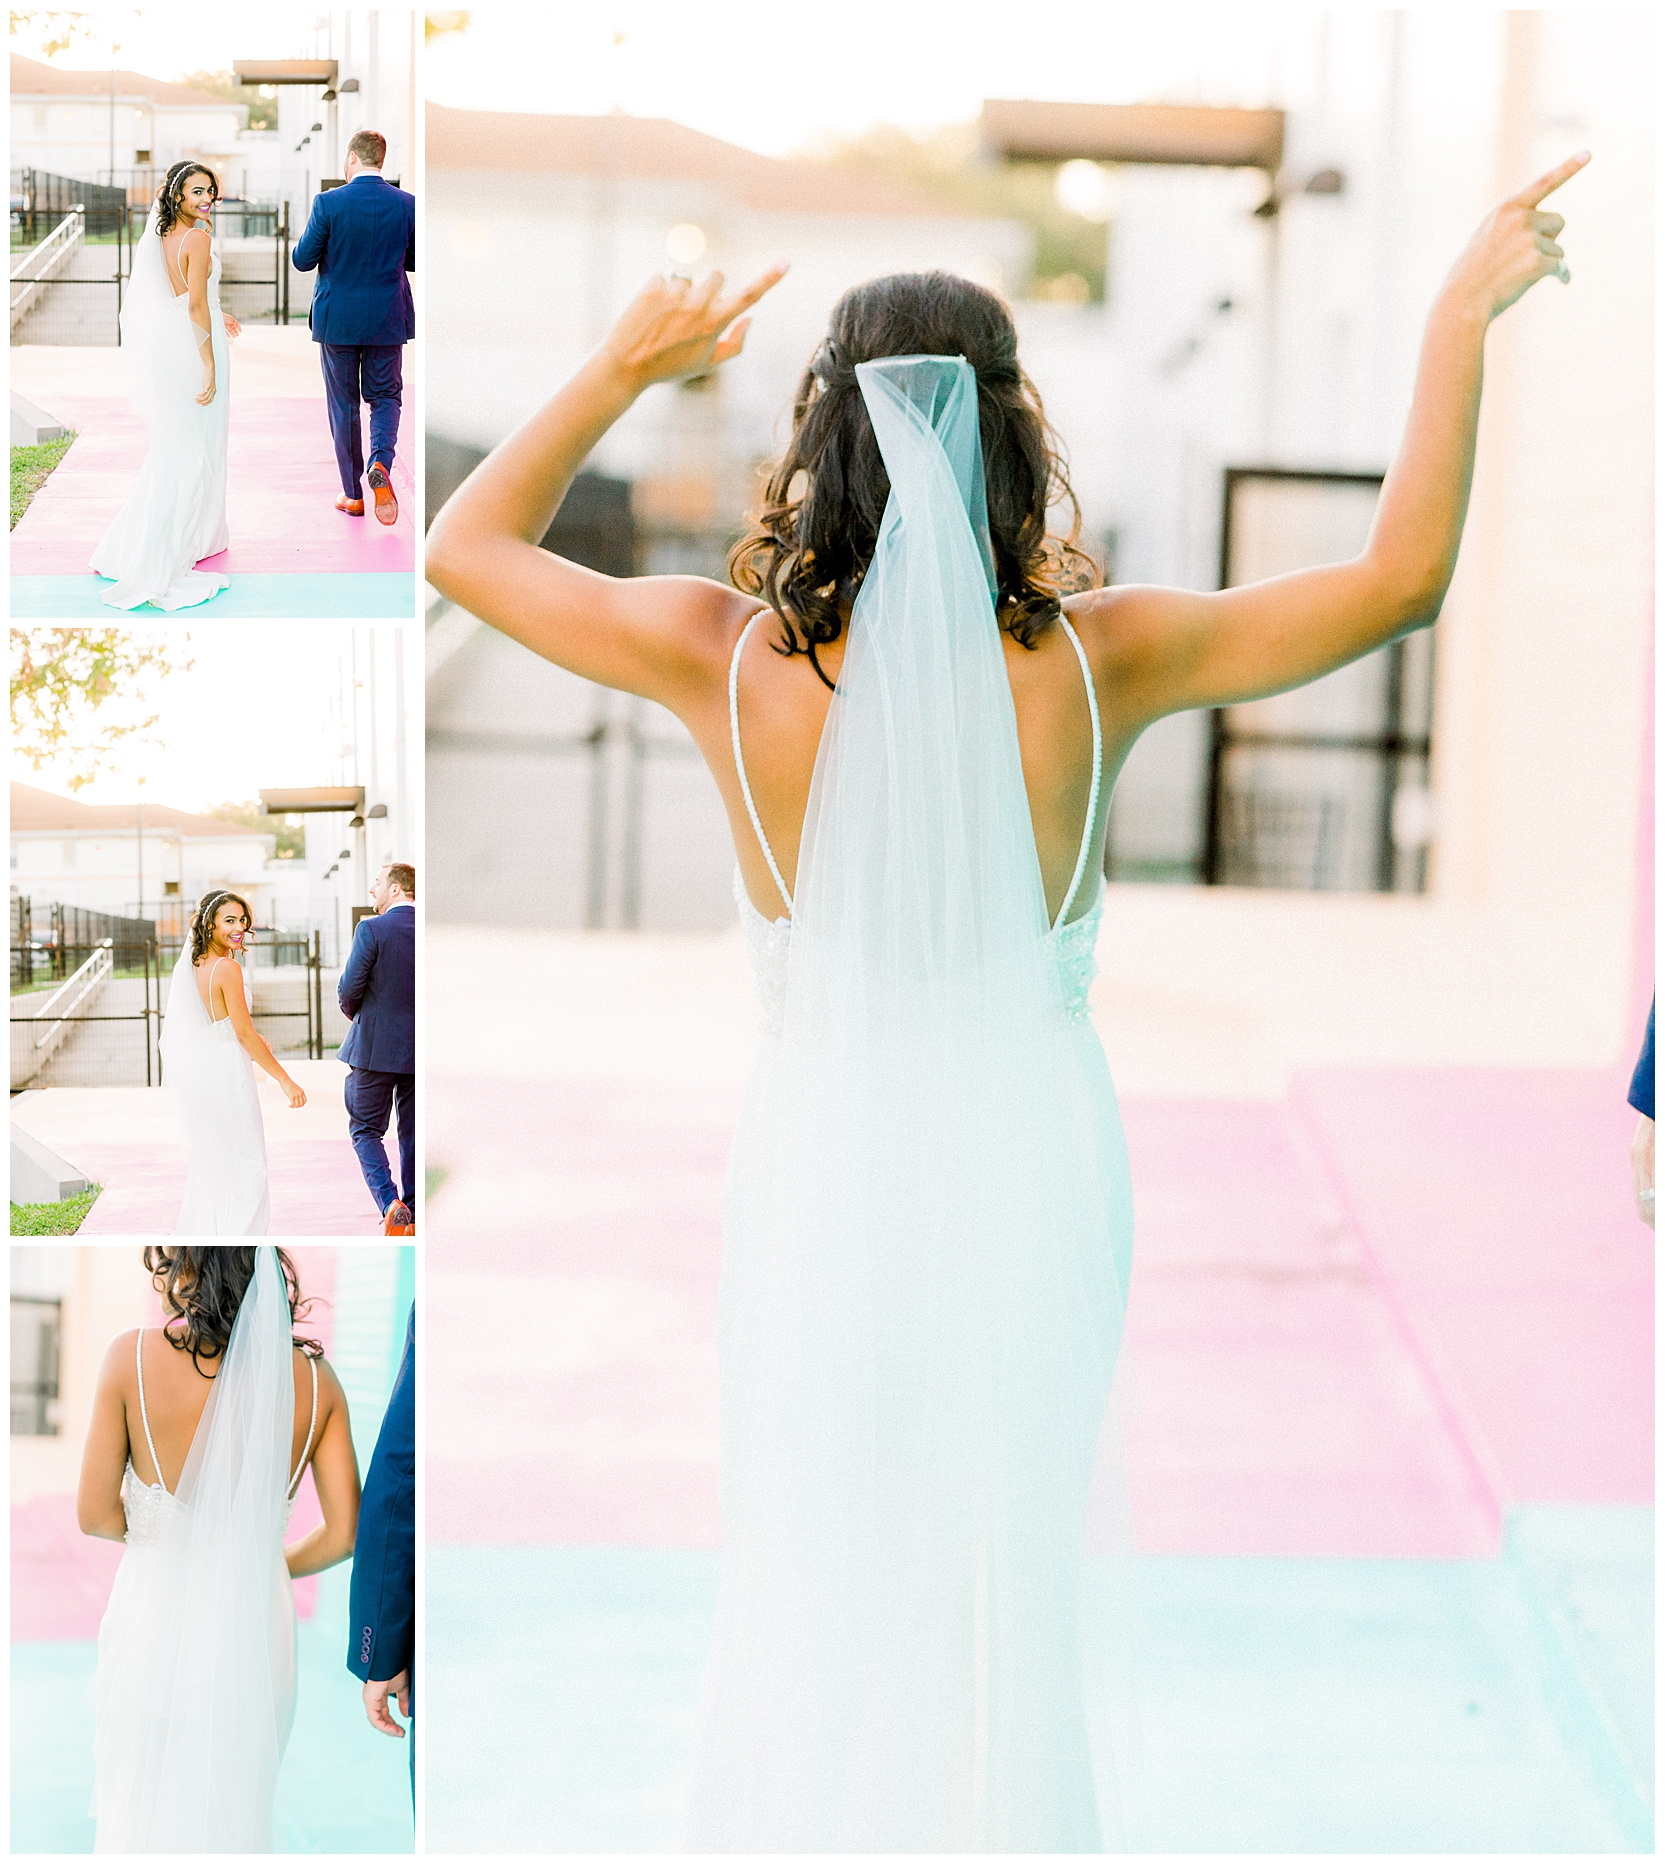 jessicafredericks_lakeland_tampa_wedding_purple_crazy hour_0066.jpg